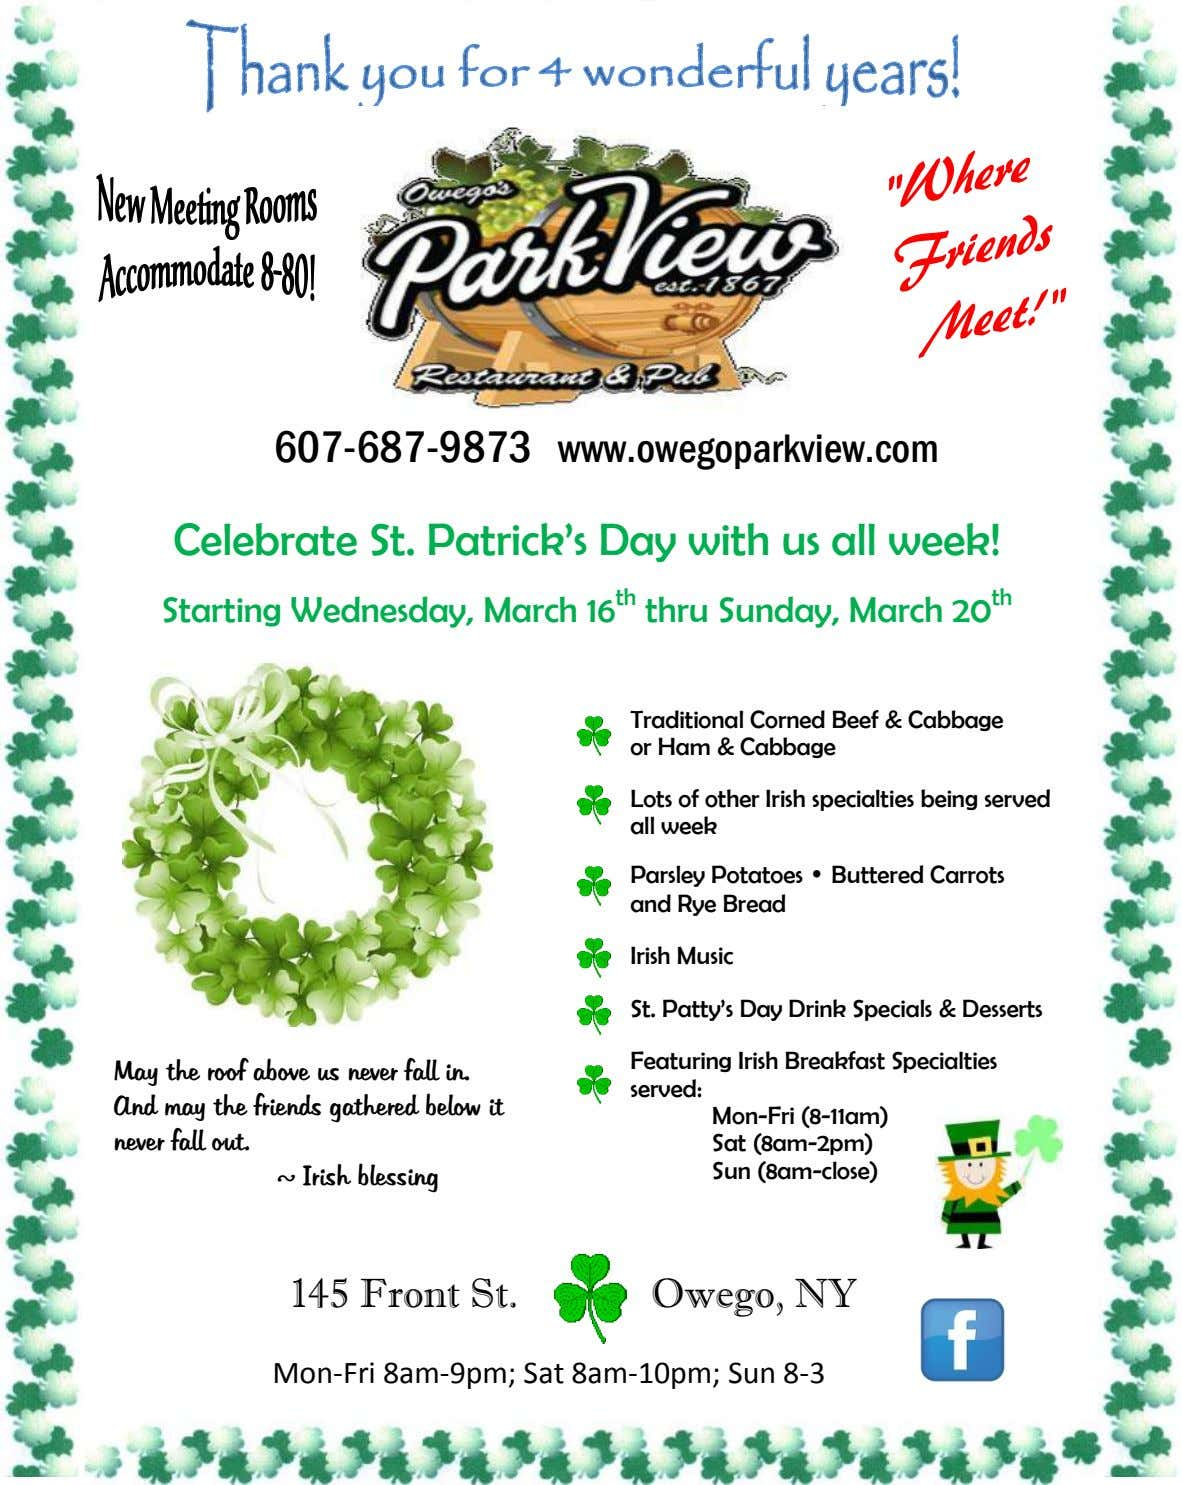 607-687-9873 www.owegoparkview.com Celebrate St. Patrick's Day with us all week! Starting Wednesday, March 16 th thru